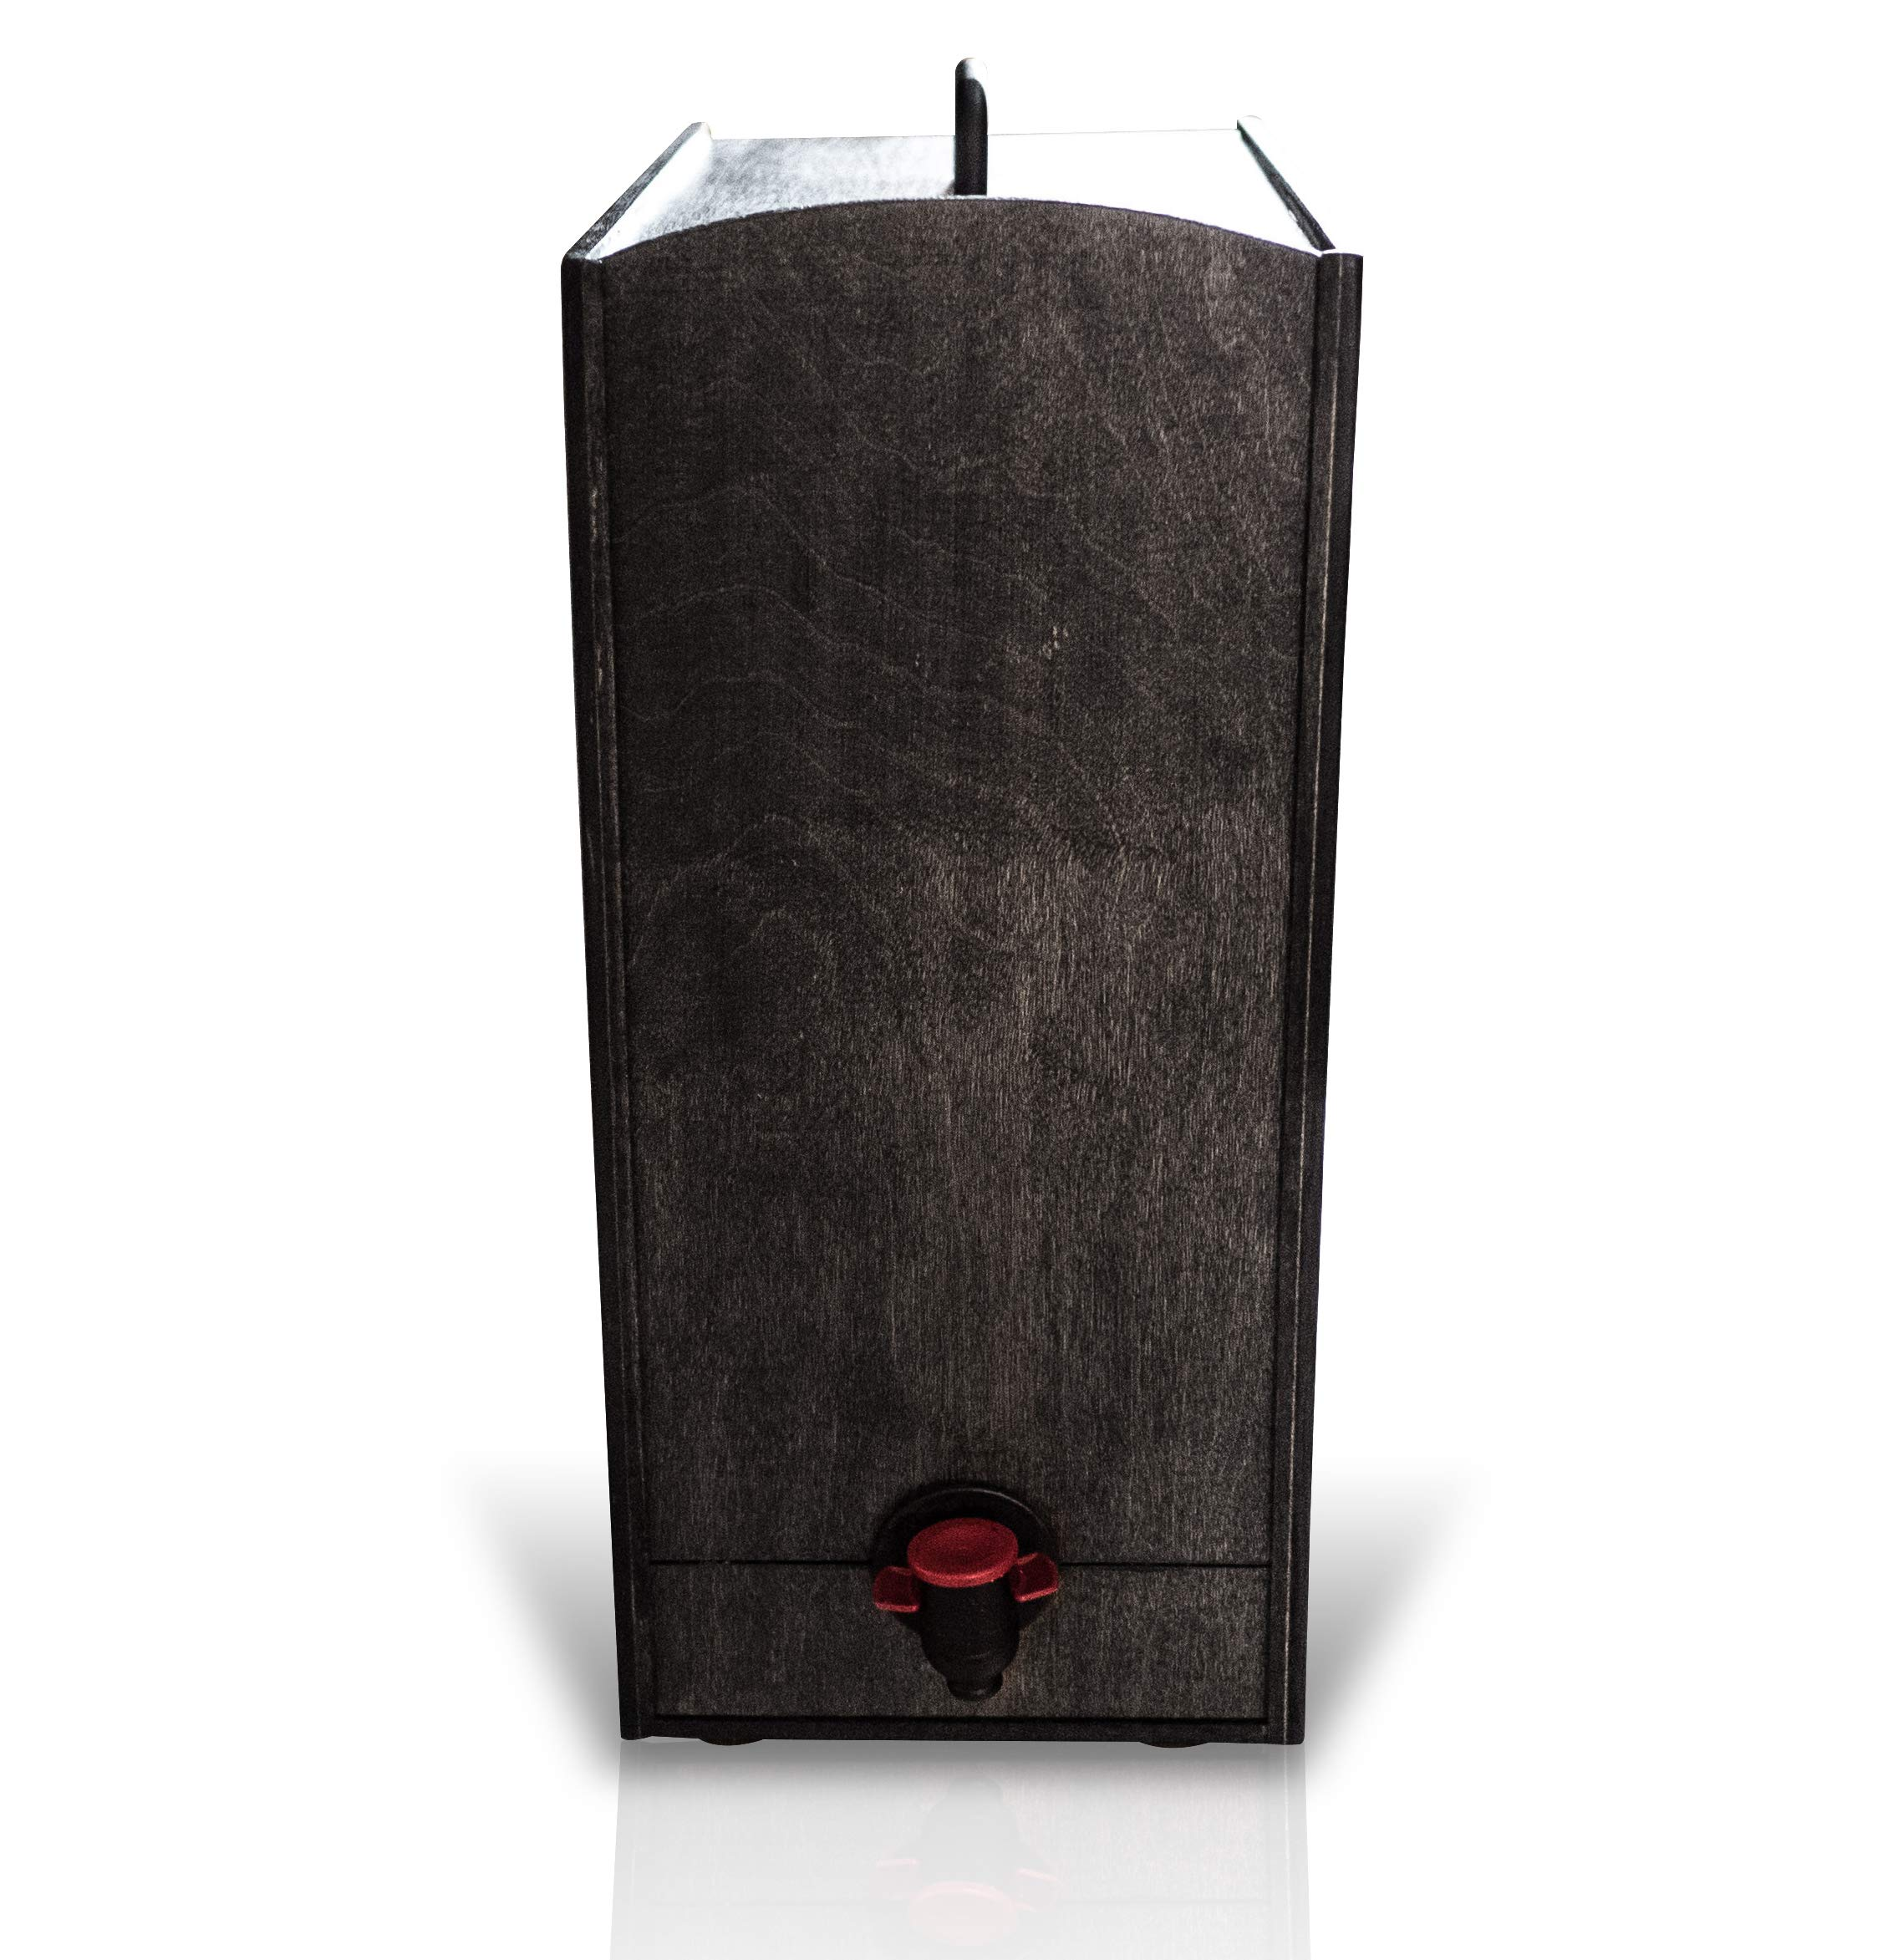 Boxed Wine Wood Case by Winewood | Black Color | Fits 3 Liter and 5 Liter Boxes of Wine | Holder, Dispenser, Cover for Boxed Wine by Winewood Cases (Image #1)